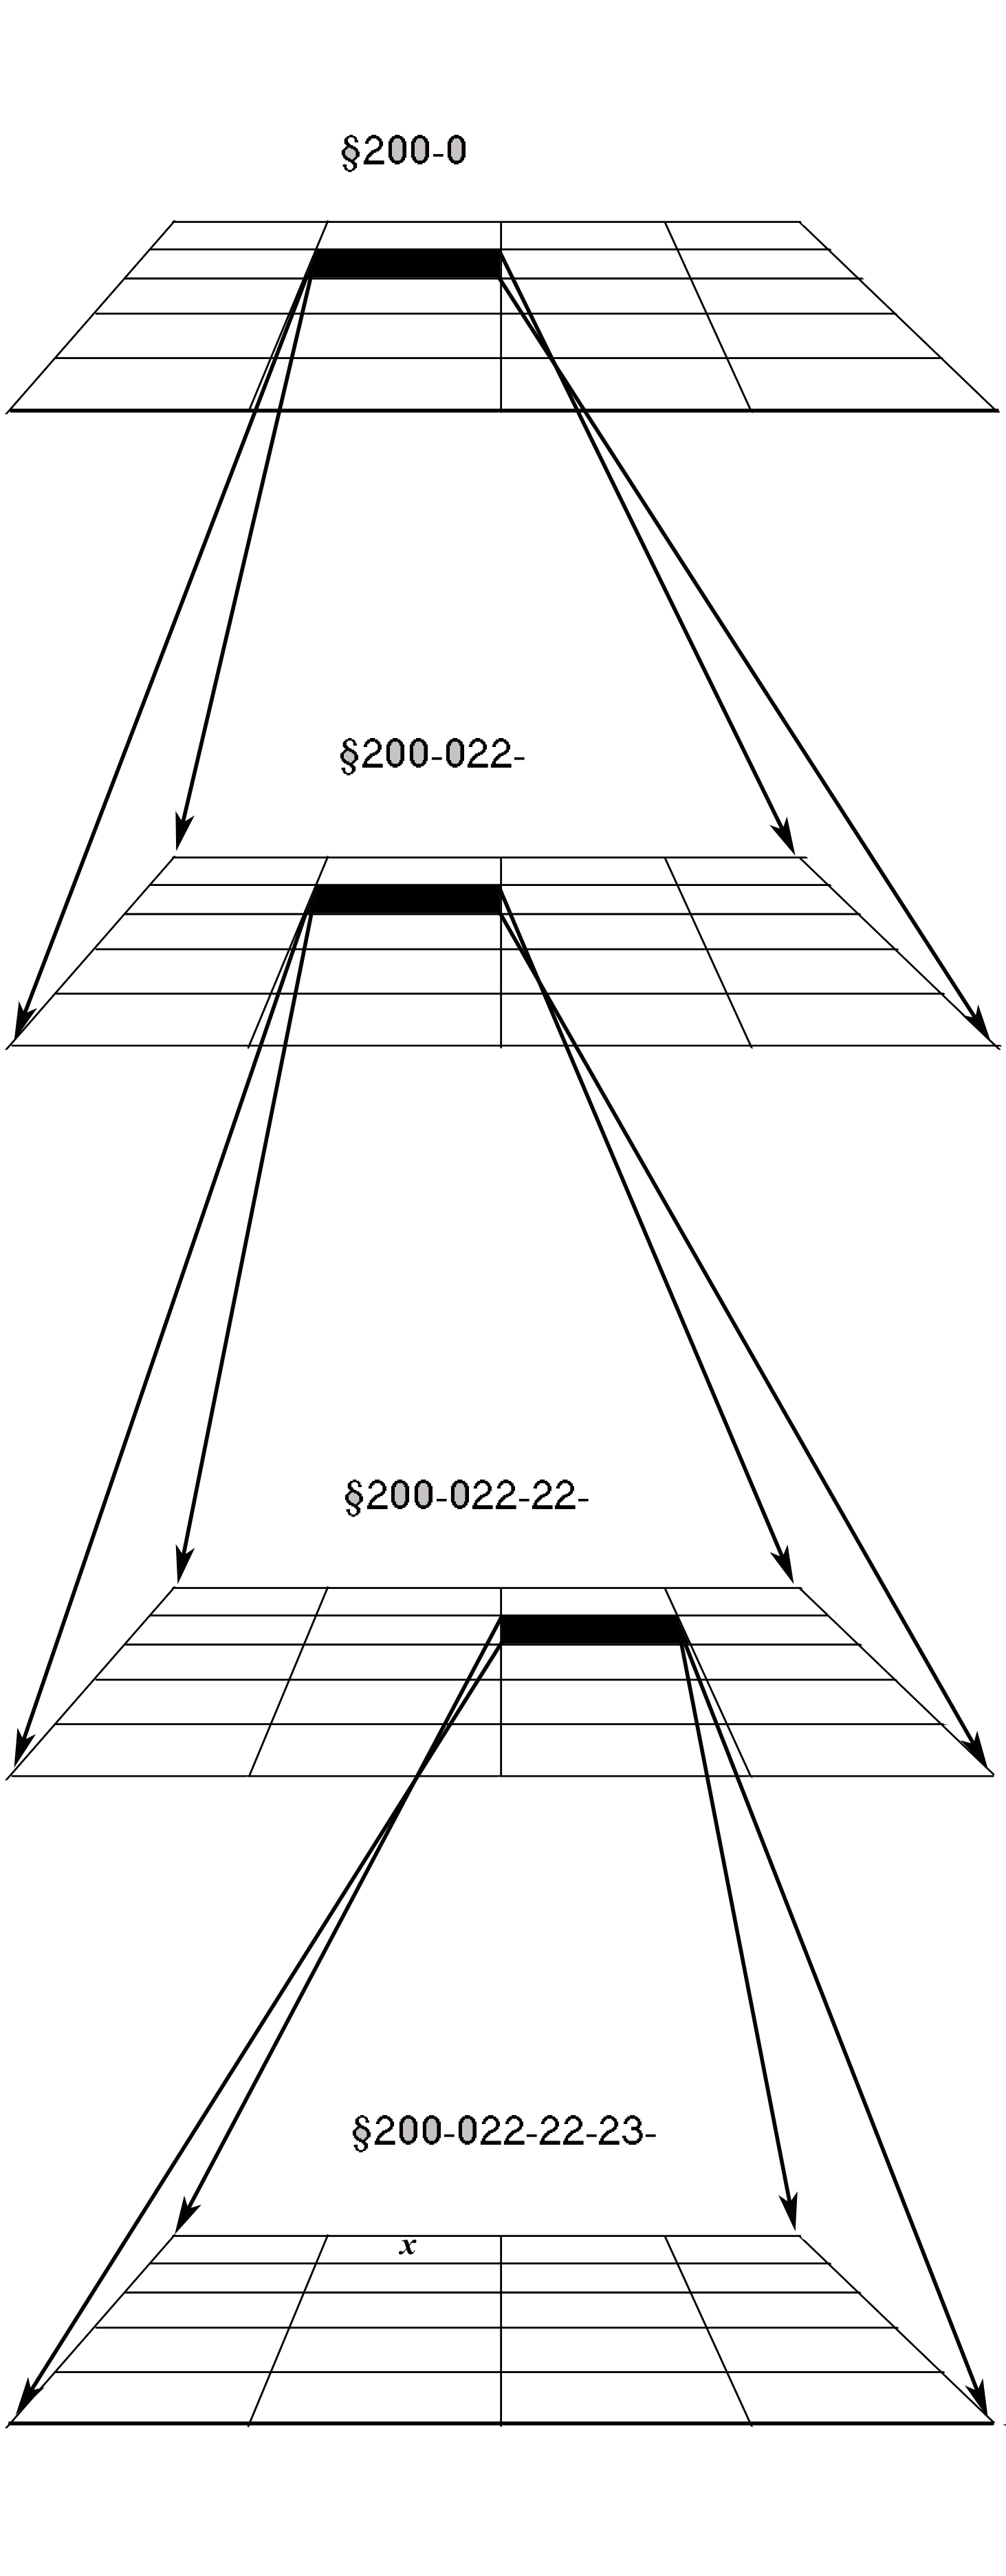 Image: Projection of Matrices